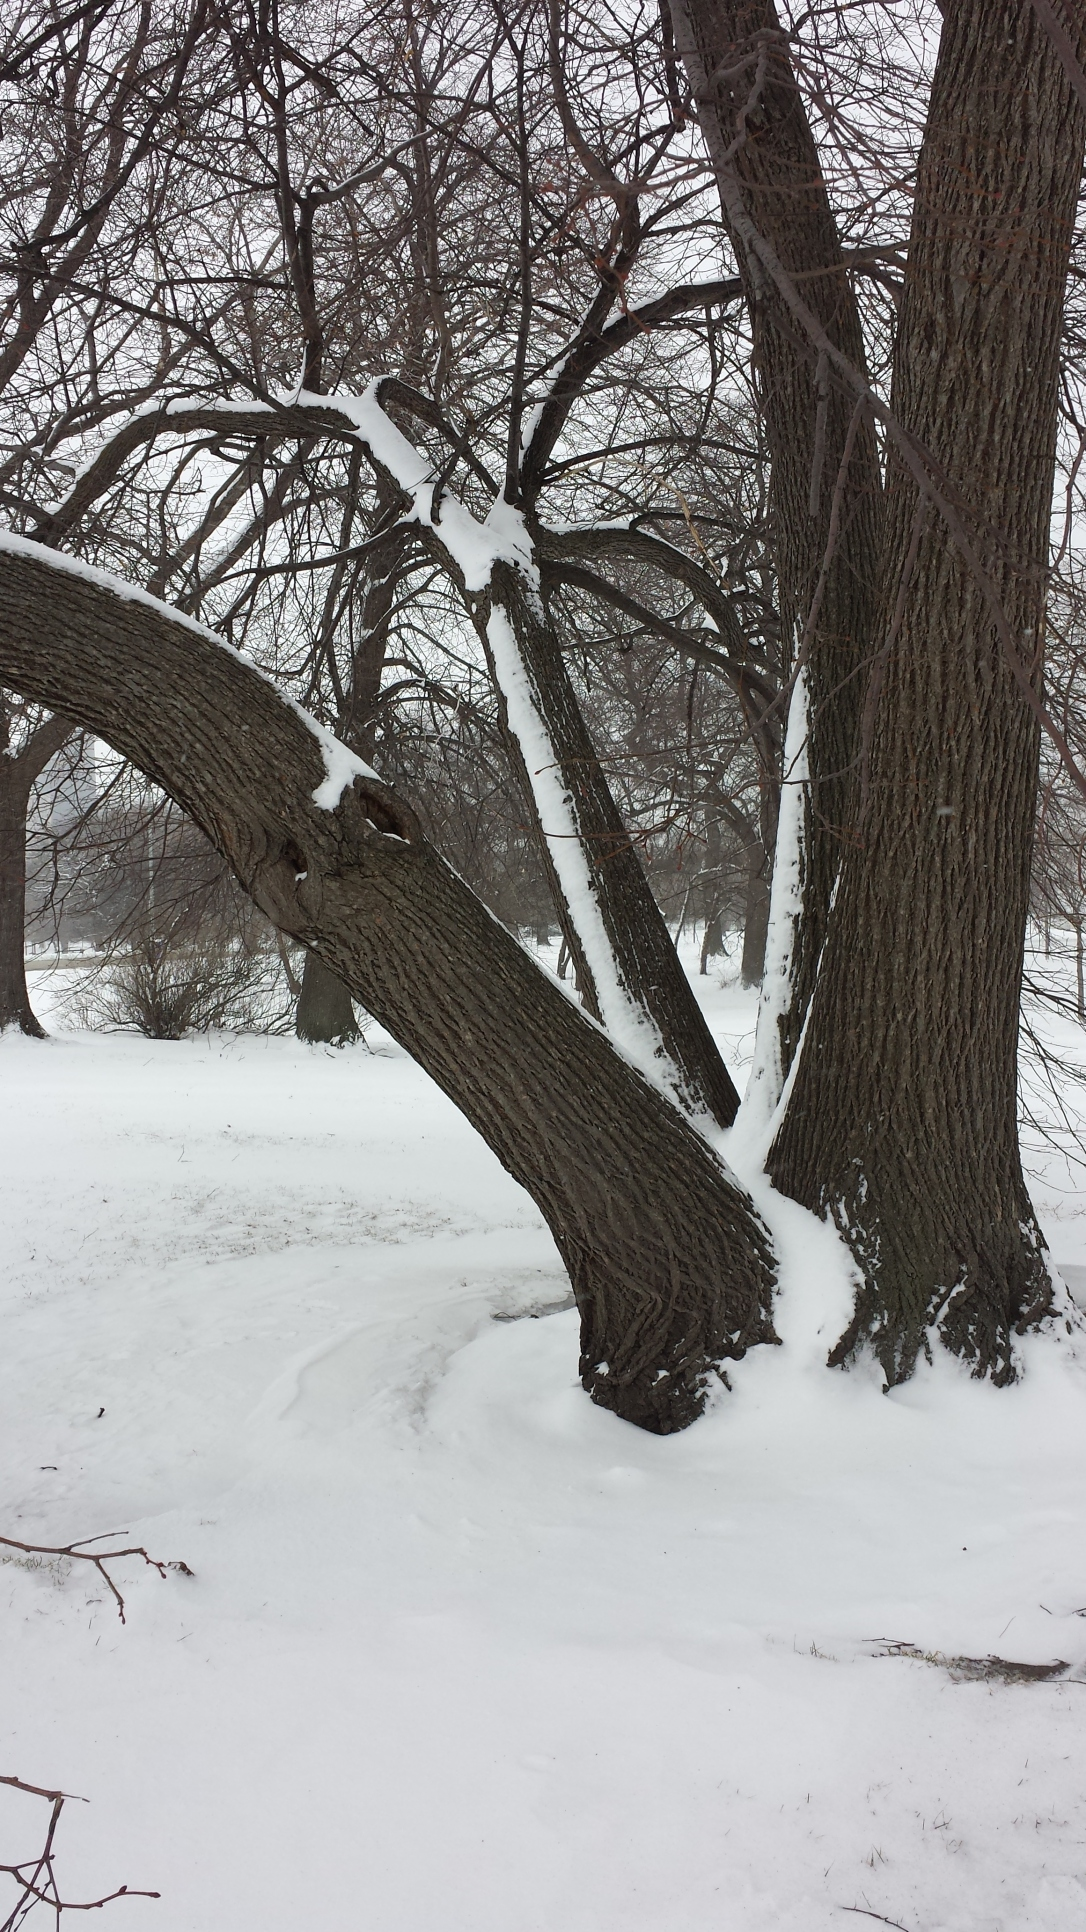 Lake Michigan, snow stripes on trees